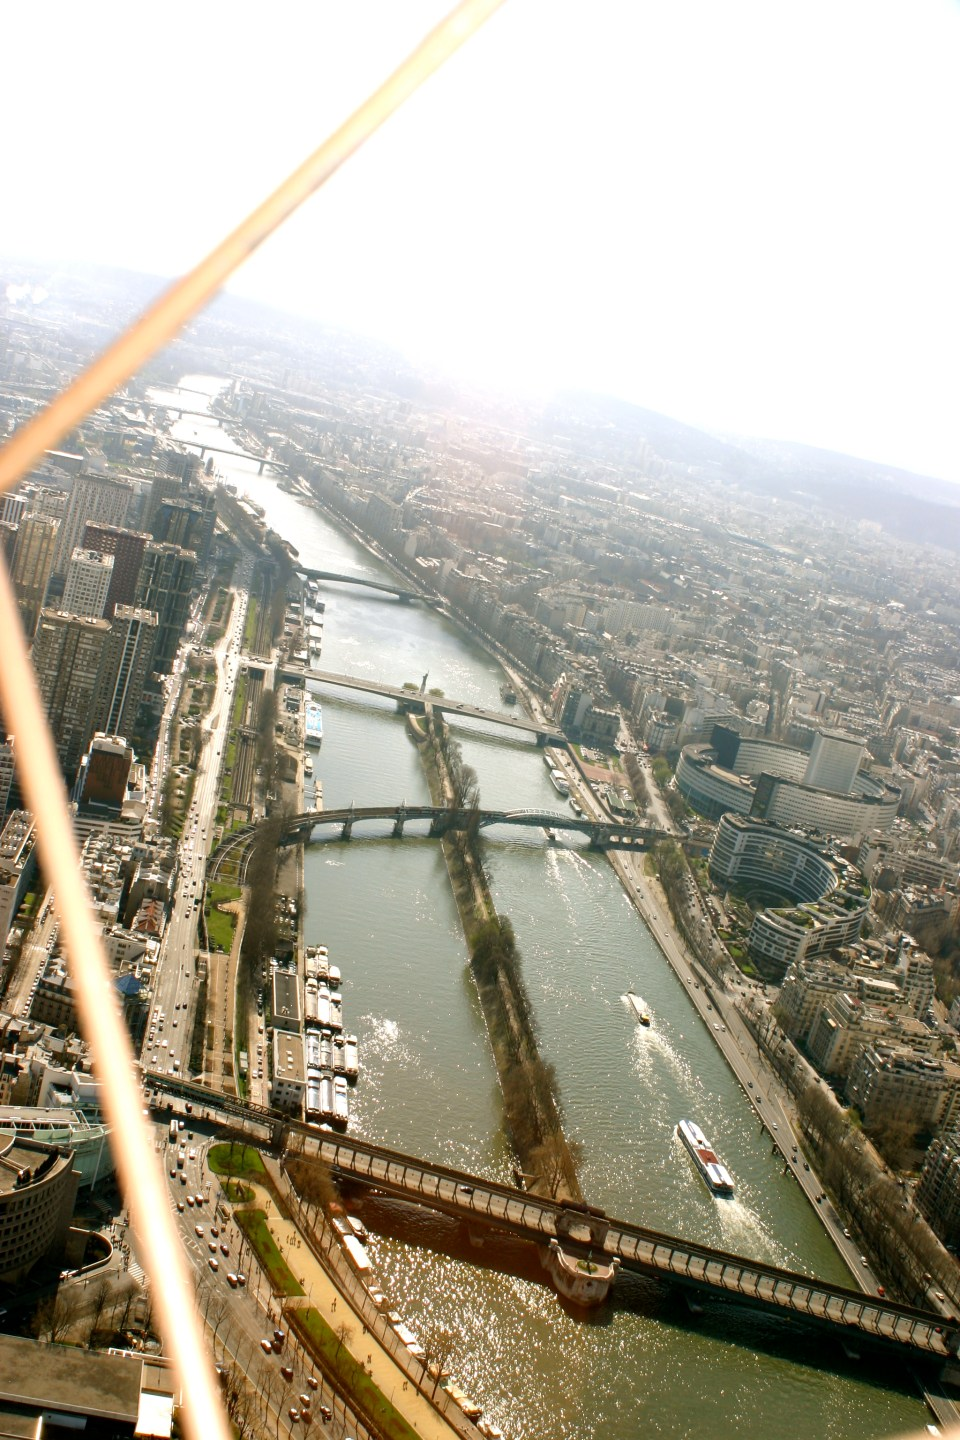 The Seine from the Eiffel Tower